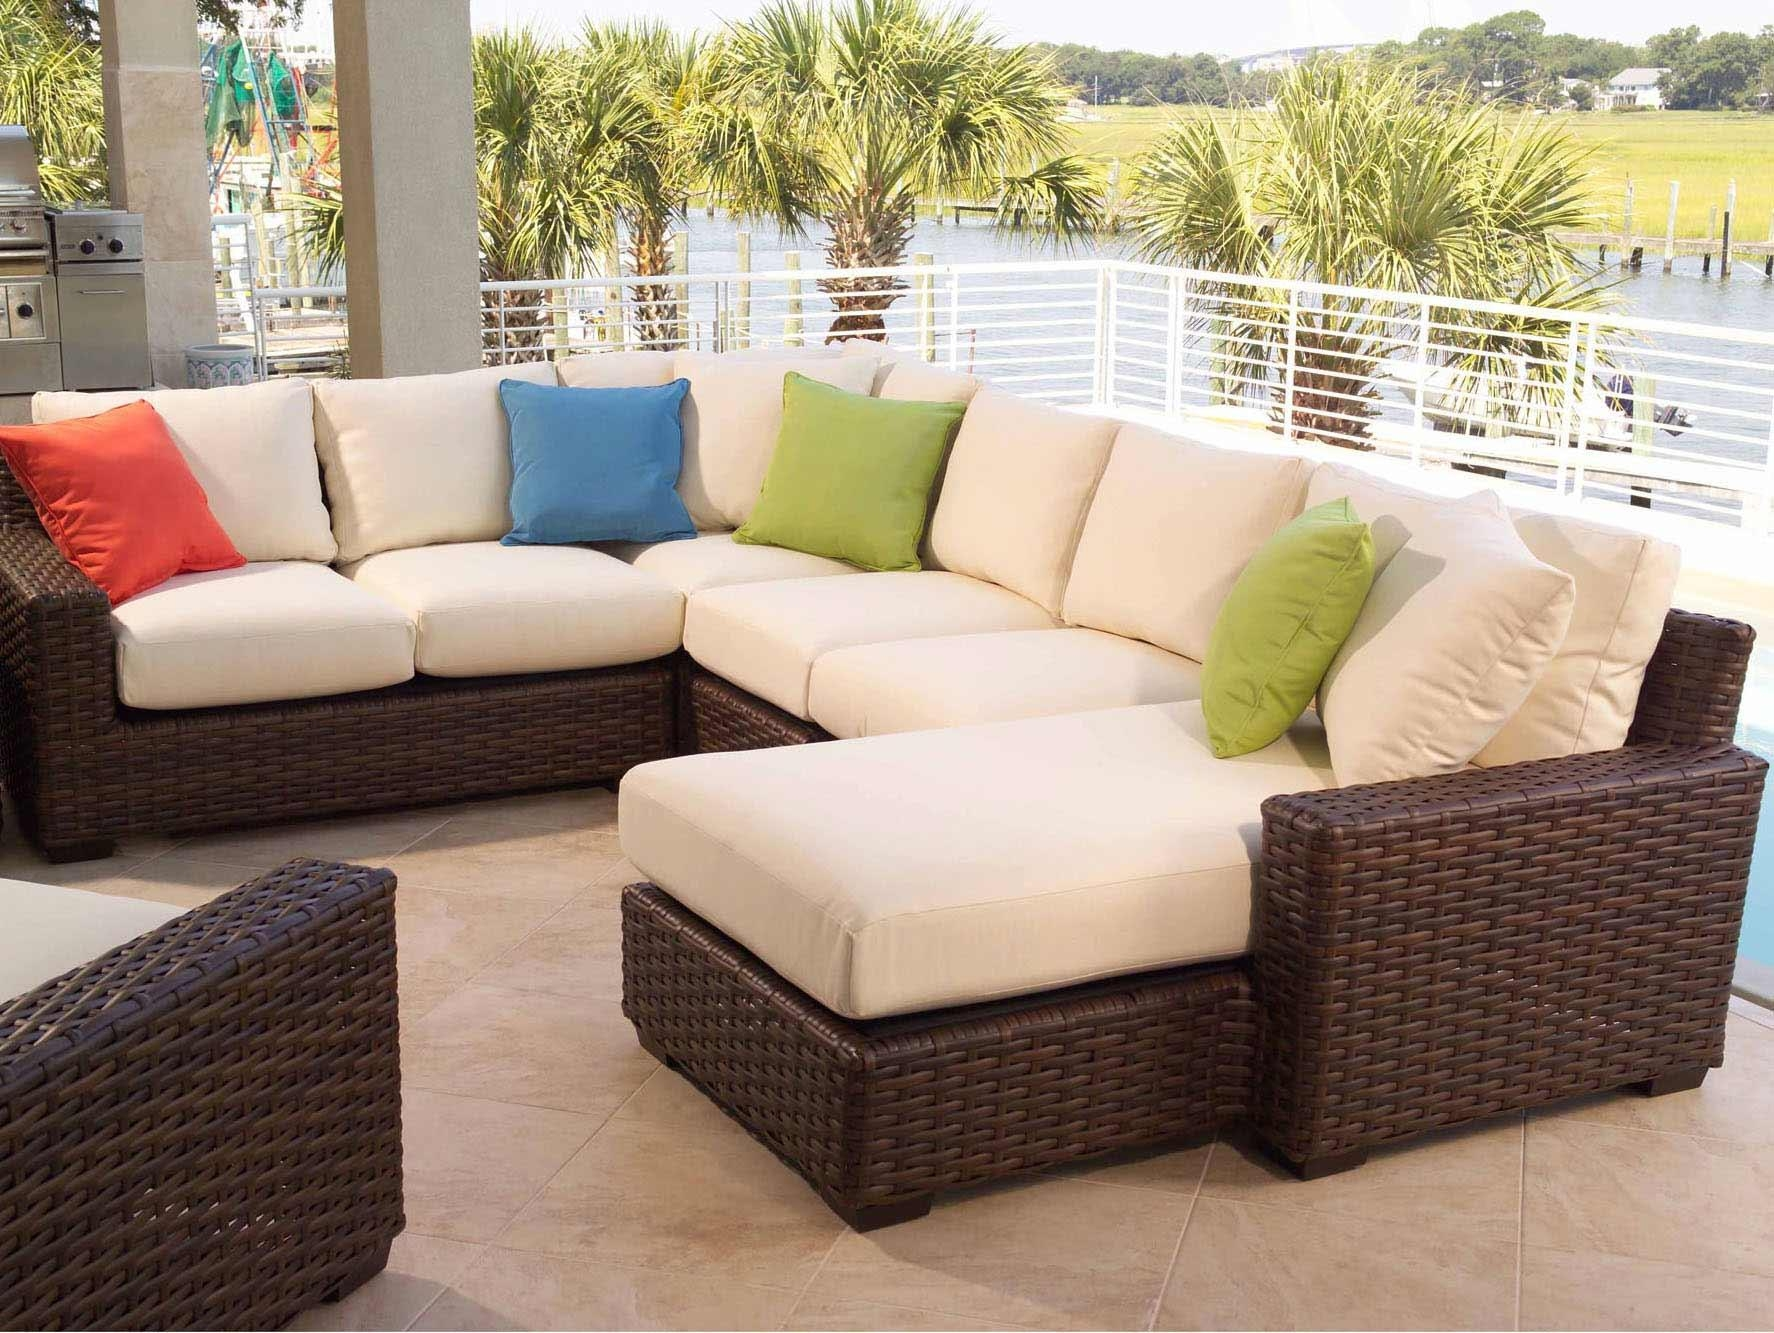 Furniture: Sectional Couch Craigslist | Sectional Sofas Mn In Craigslist Sectional Sofas (Image 5 of 20)